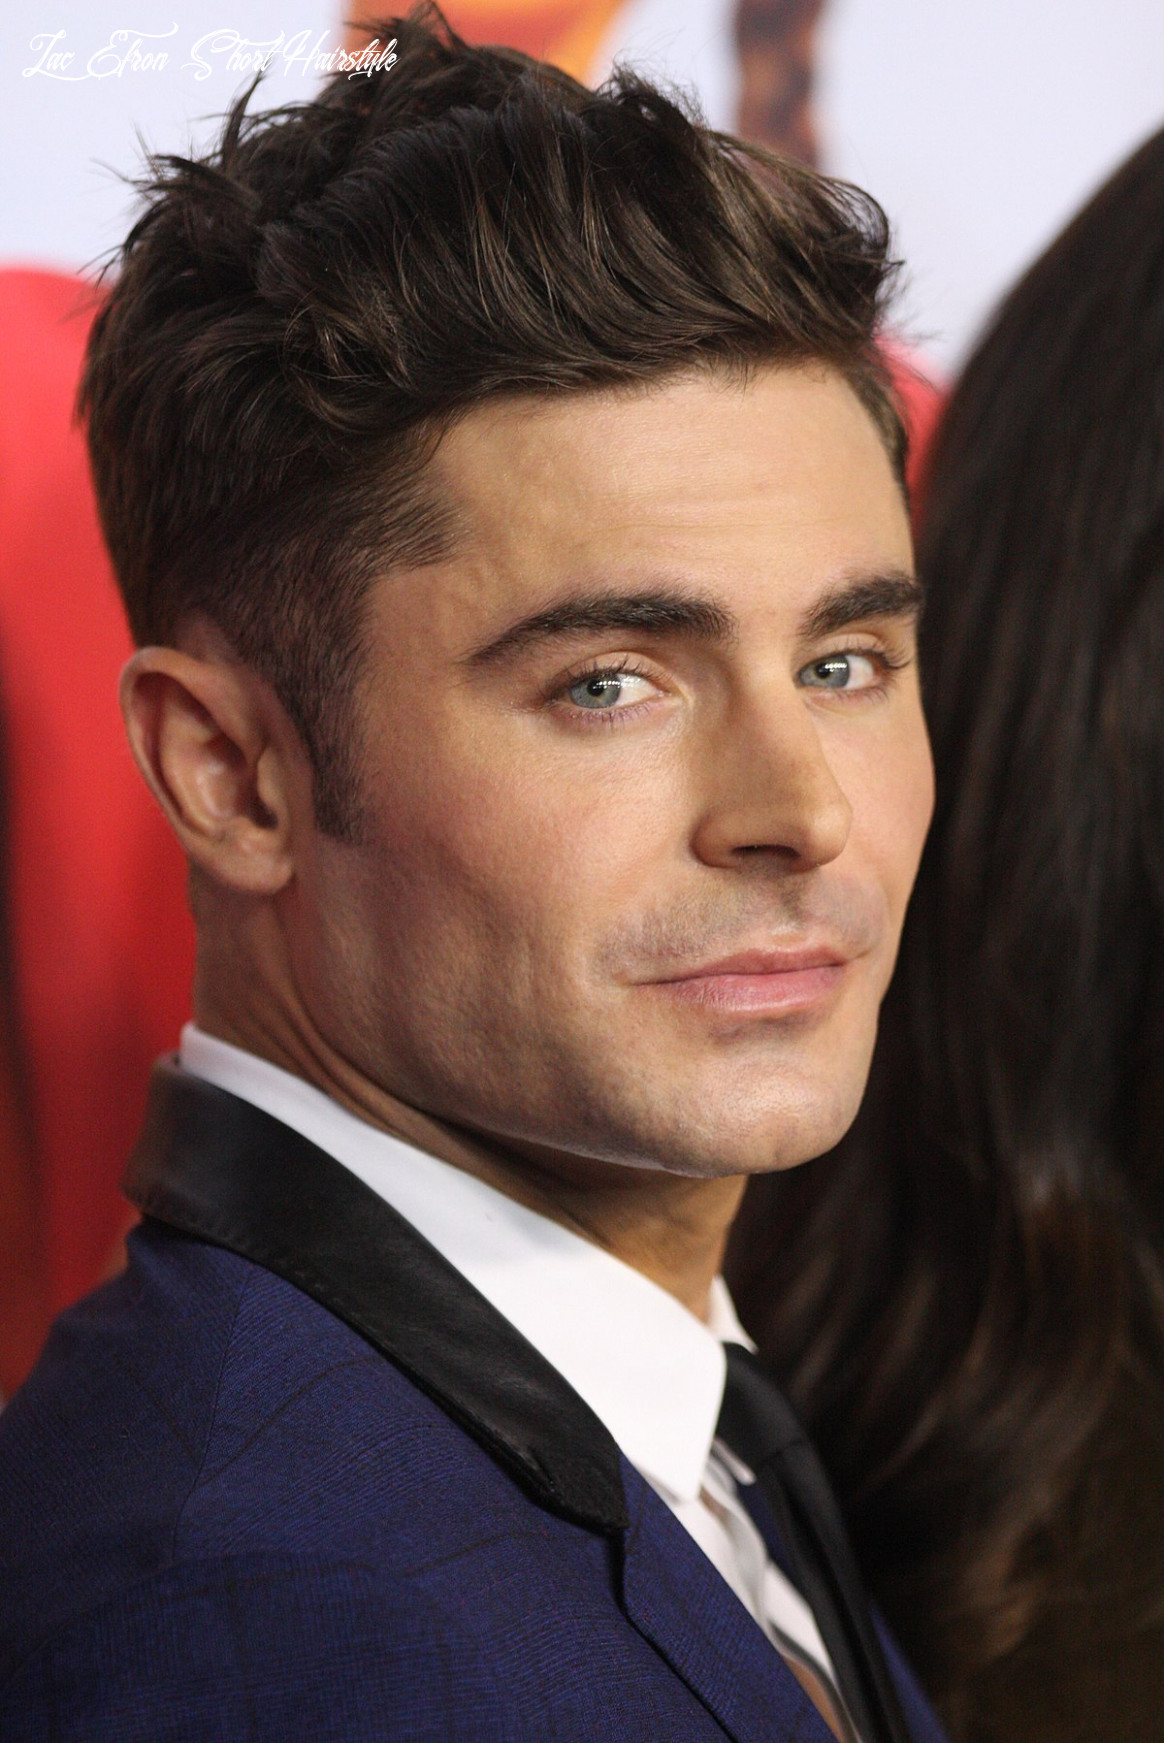 Zac efron wikipedia zac efron short hairstyle